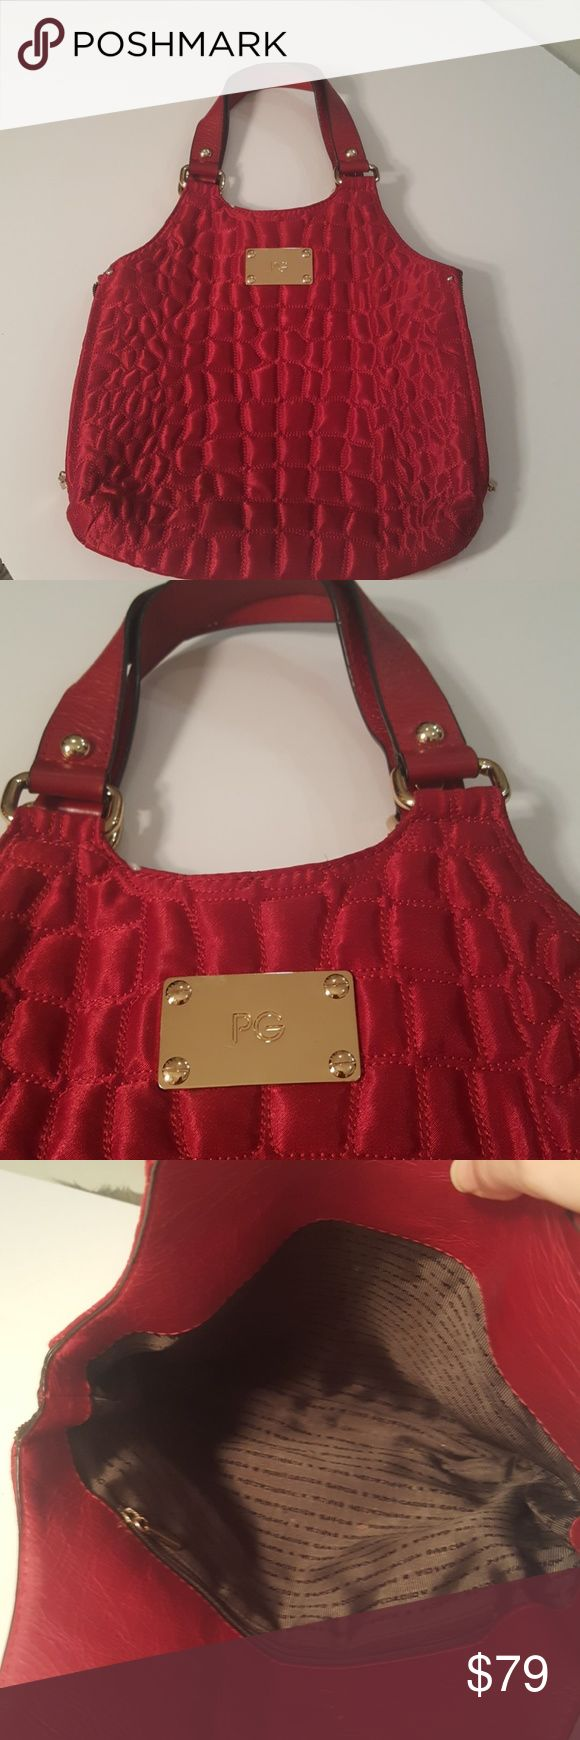 Purificacion Garcia purse Purificacion Garcia quilted res purse. !!BEAUTIFUL.. the perfect red bag!!. Purificacion Garcia Bags Satchels